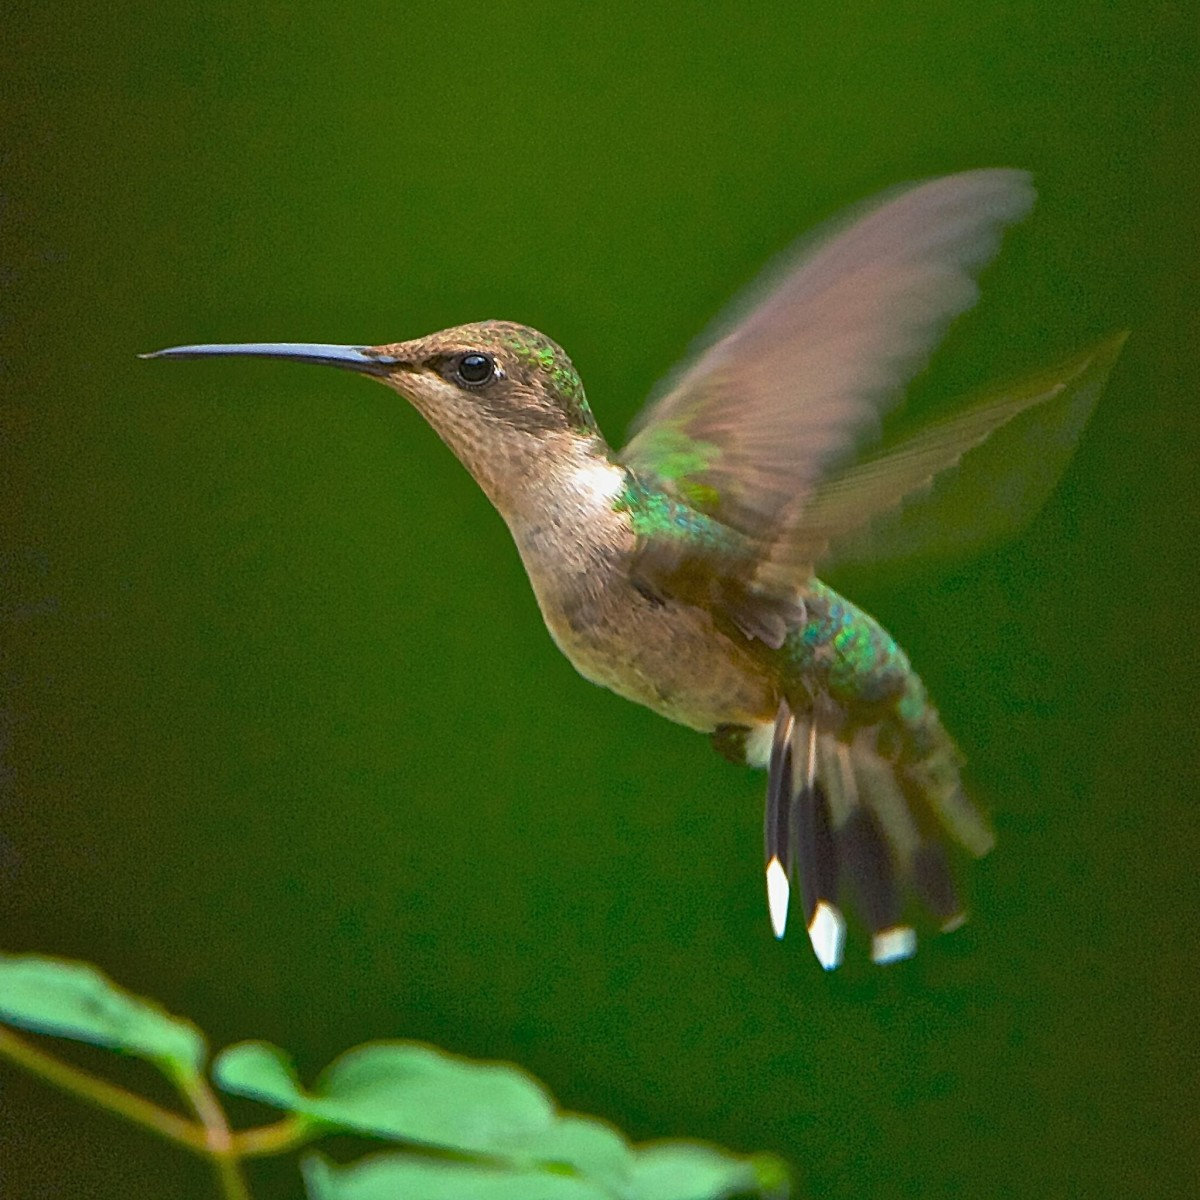 A hummingbird can hover for as long as it wants, which makes viewing them much more enjoyable.